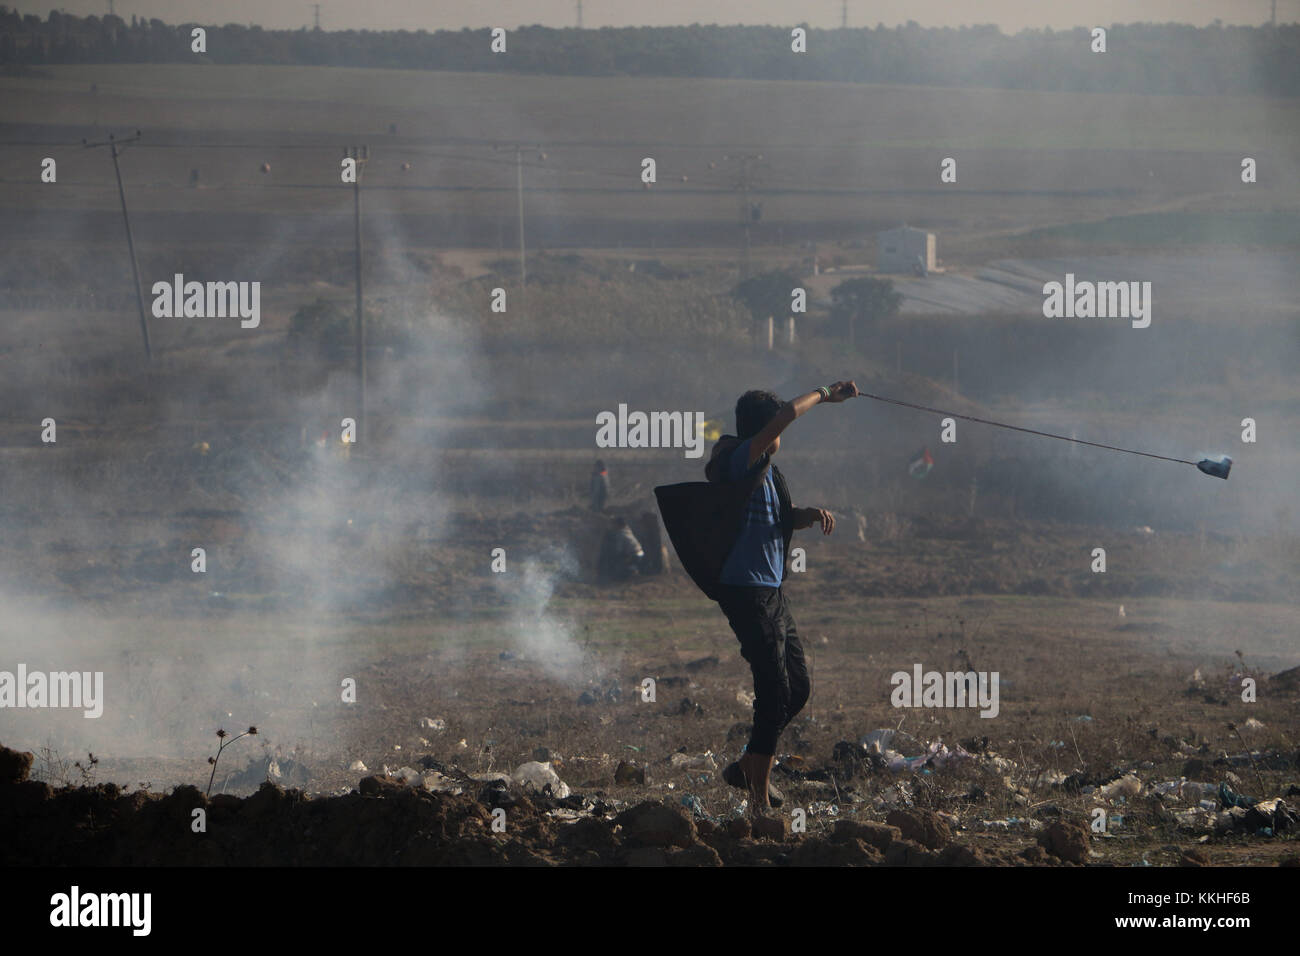 Gaza Strip border with Israel. 1st Dec, 2017. Clashes erupt between young Palestinians and Israeli soldiers on the - Stock Image